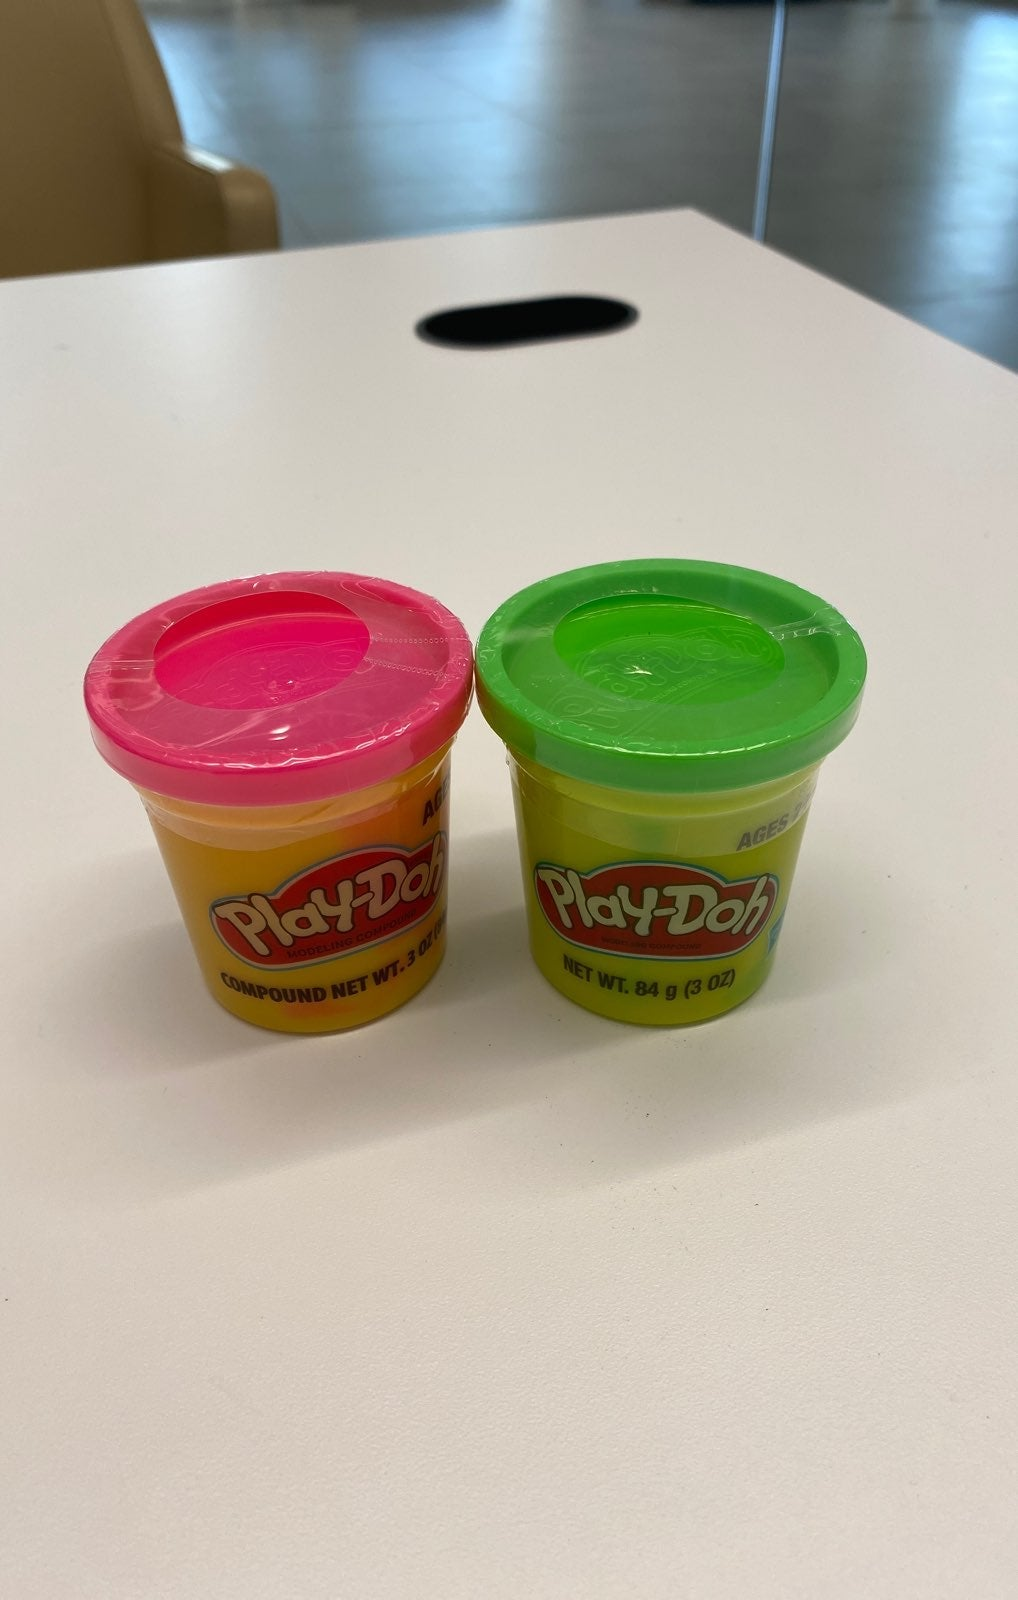 Pink and Green Playdoh bundle